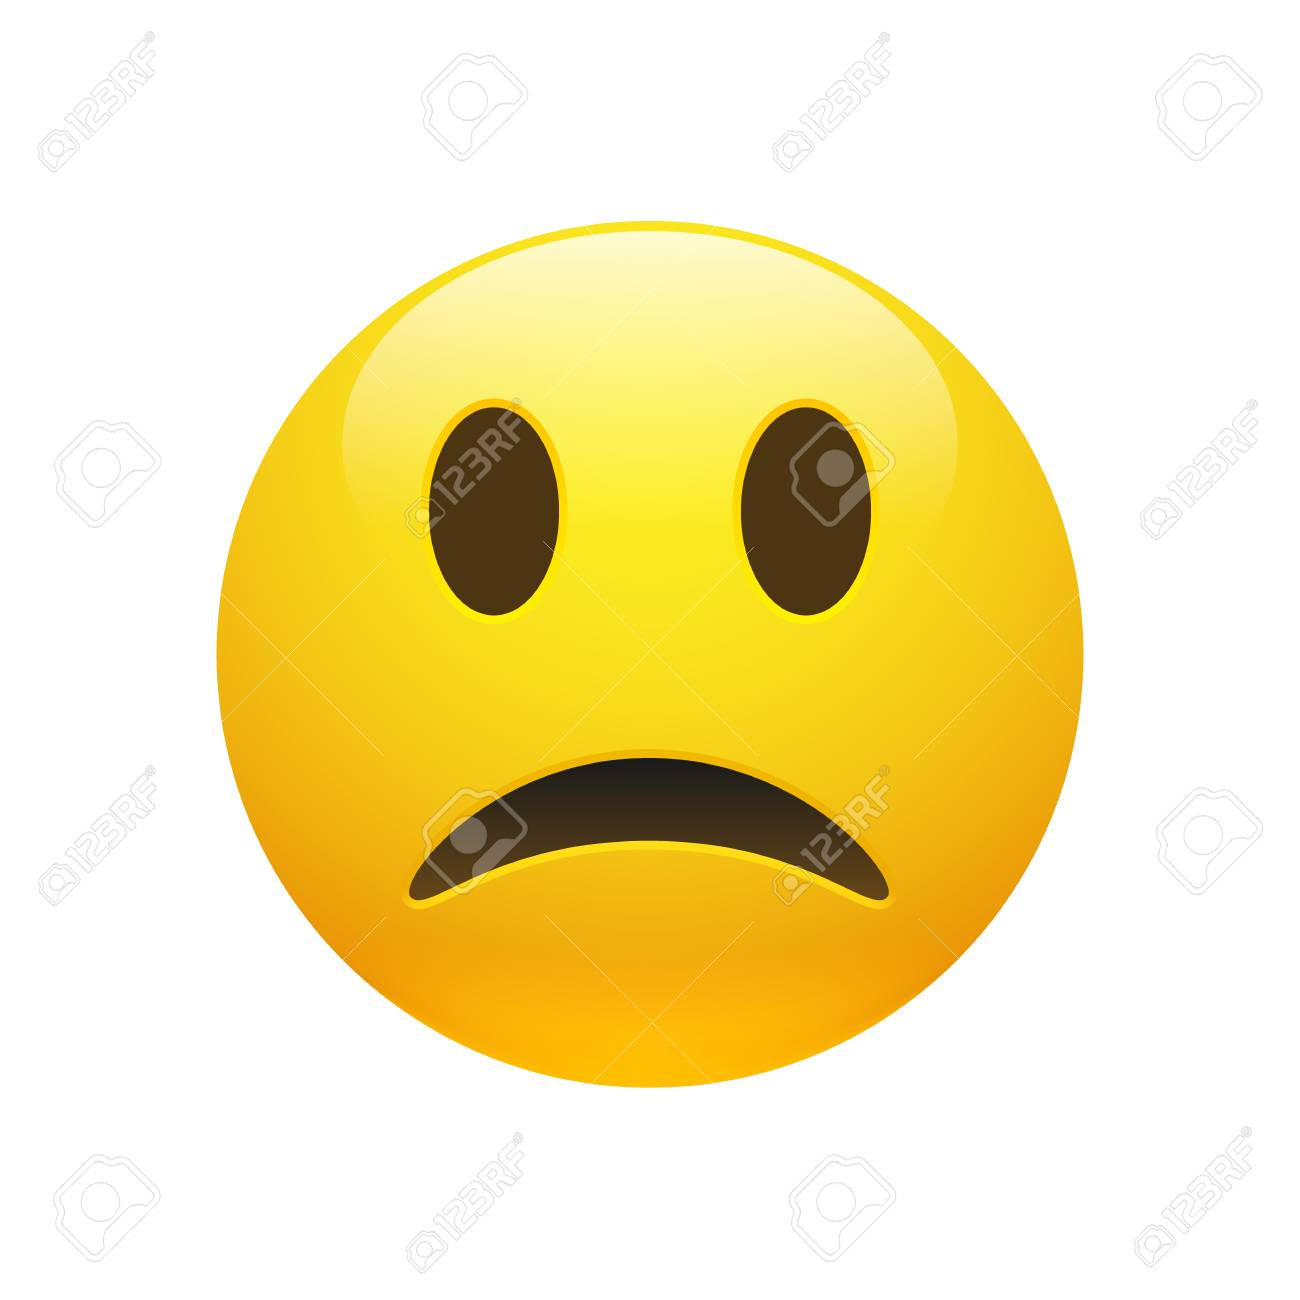 Vector - Vector Emoji yellow sad face with eyes and mouth on white background. Funny cartoon Emoji icon. 3D illustration for chat or message.